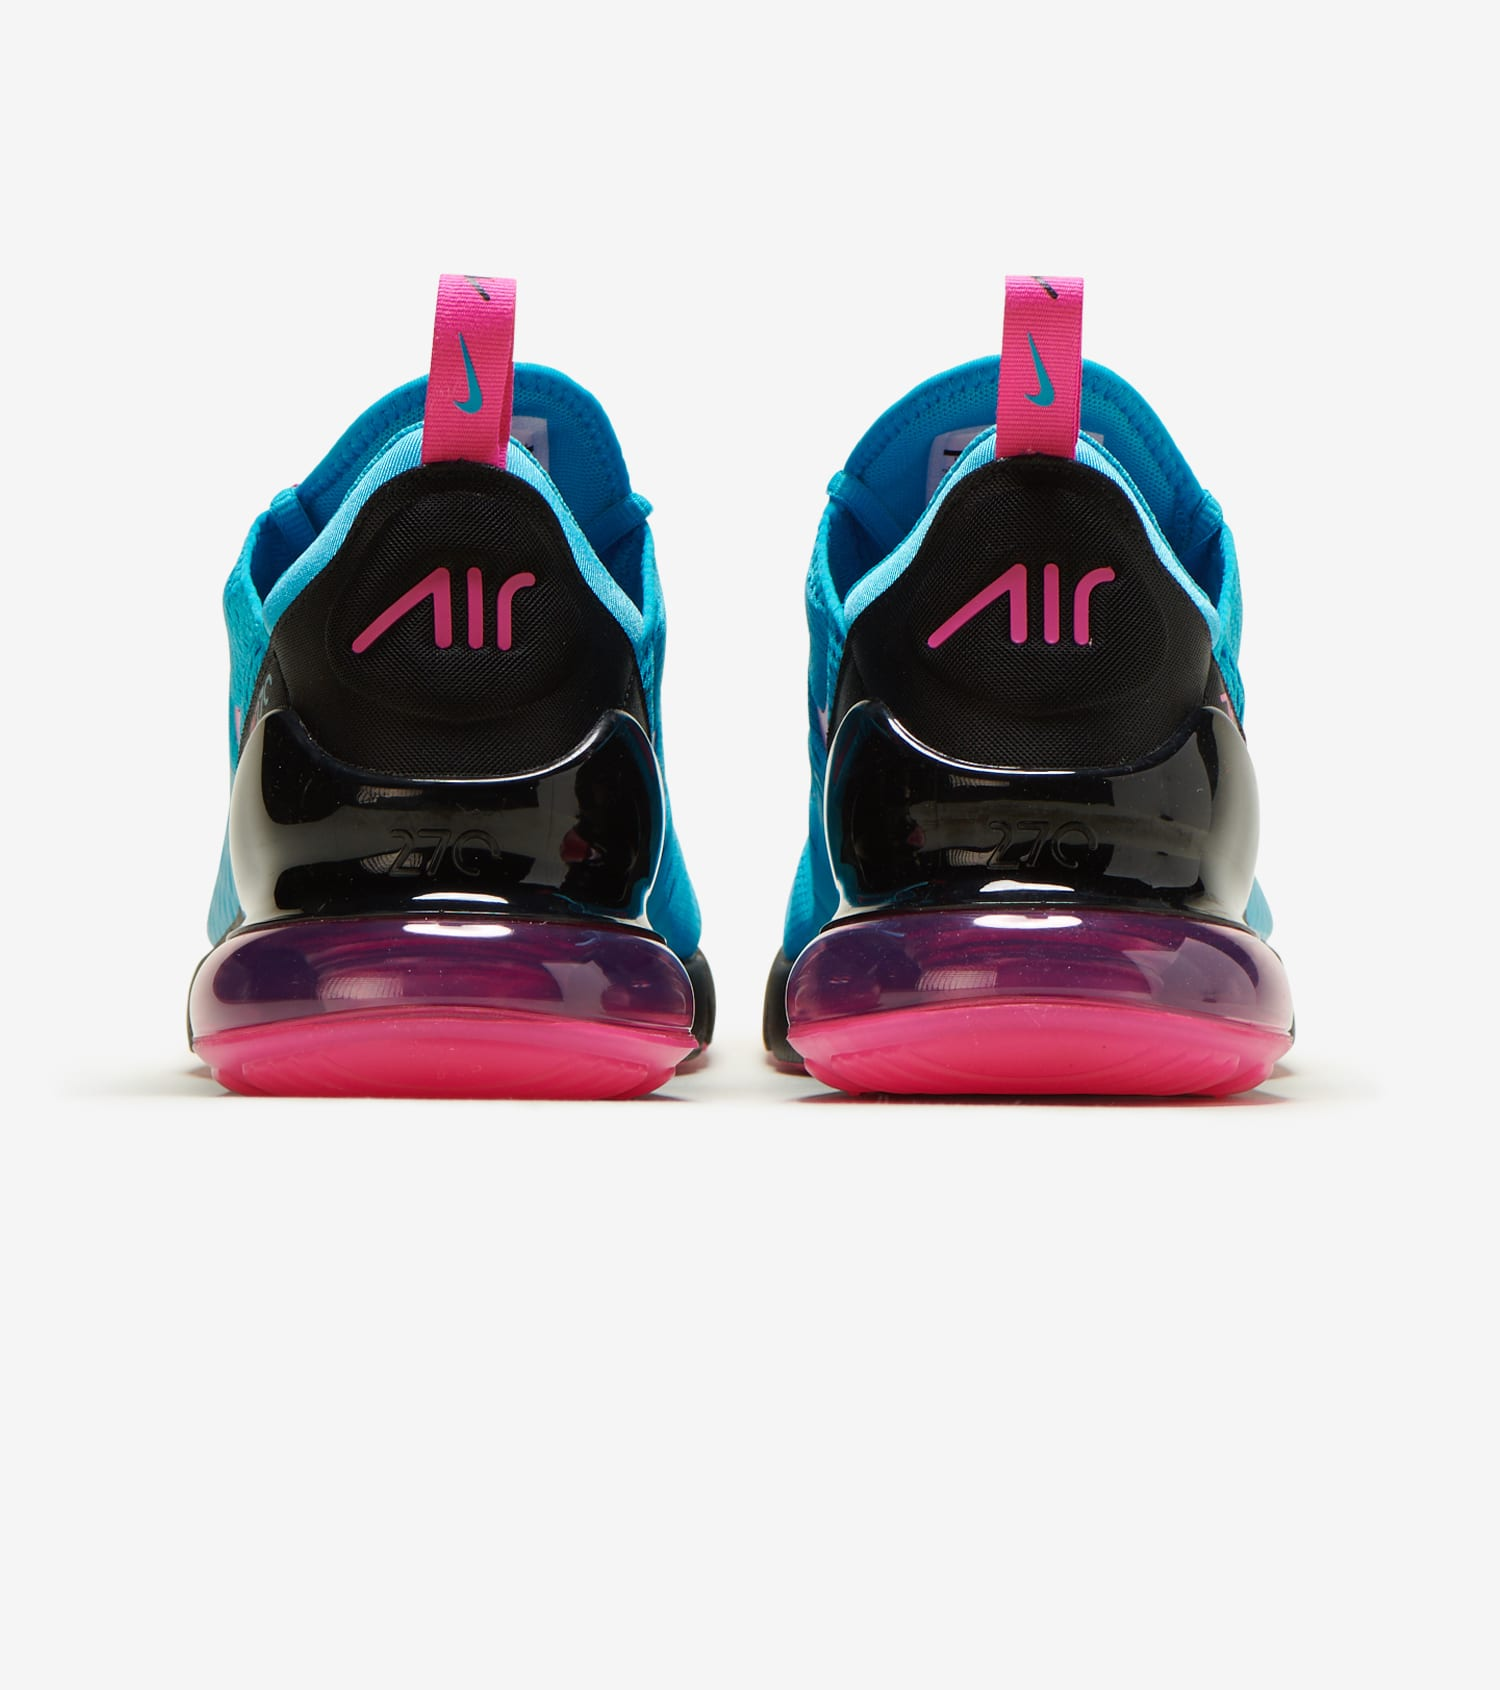 Nike Air Max 270 Pink + Blue BV6078 400 Release Info